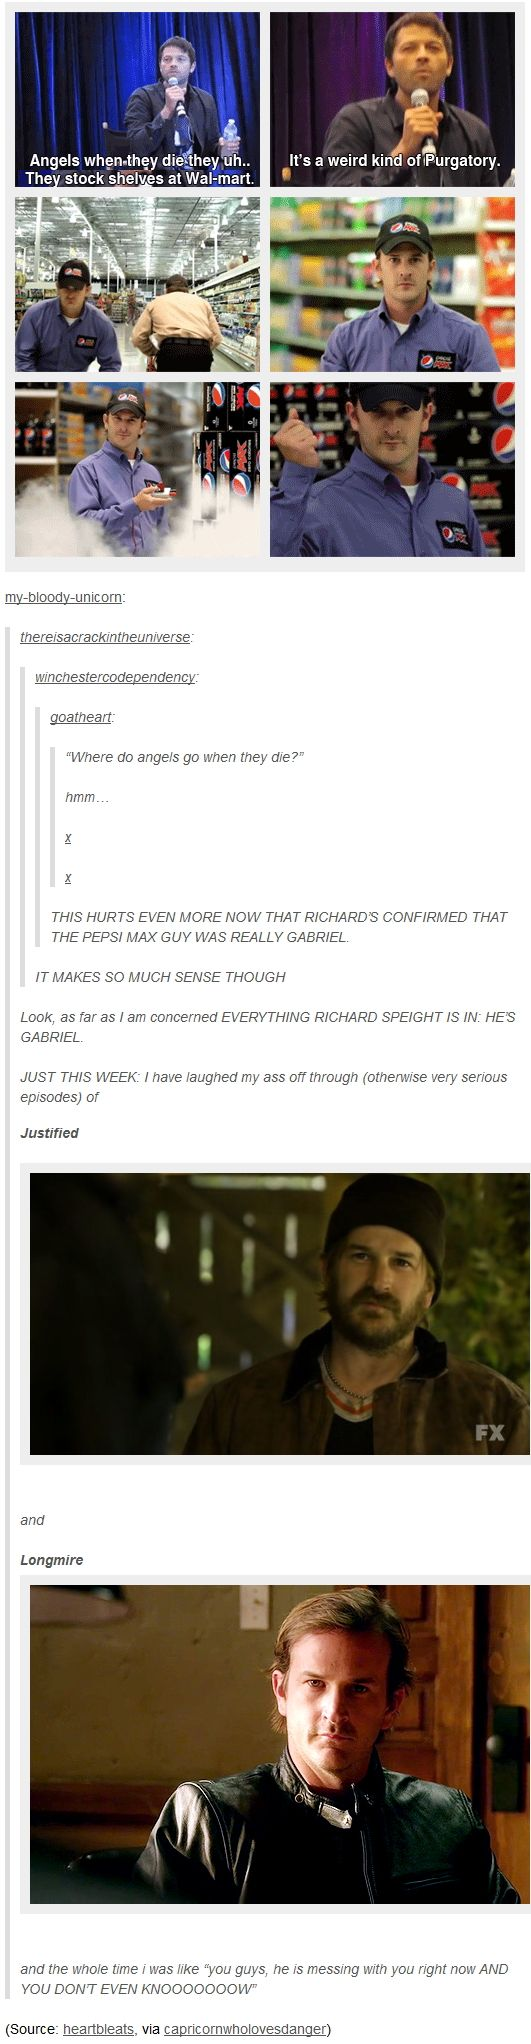 "Richard Speight Jr is Gabriel [gifset] - Misha Collins answers ""what happens to angels after they die"" Stock shelves at Wal-mart - Pepsi, Longmire, Justified, Supernatural"